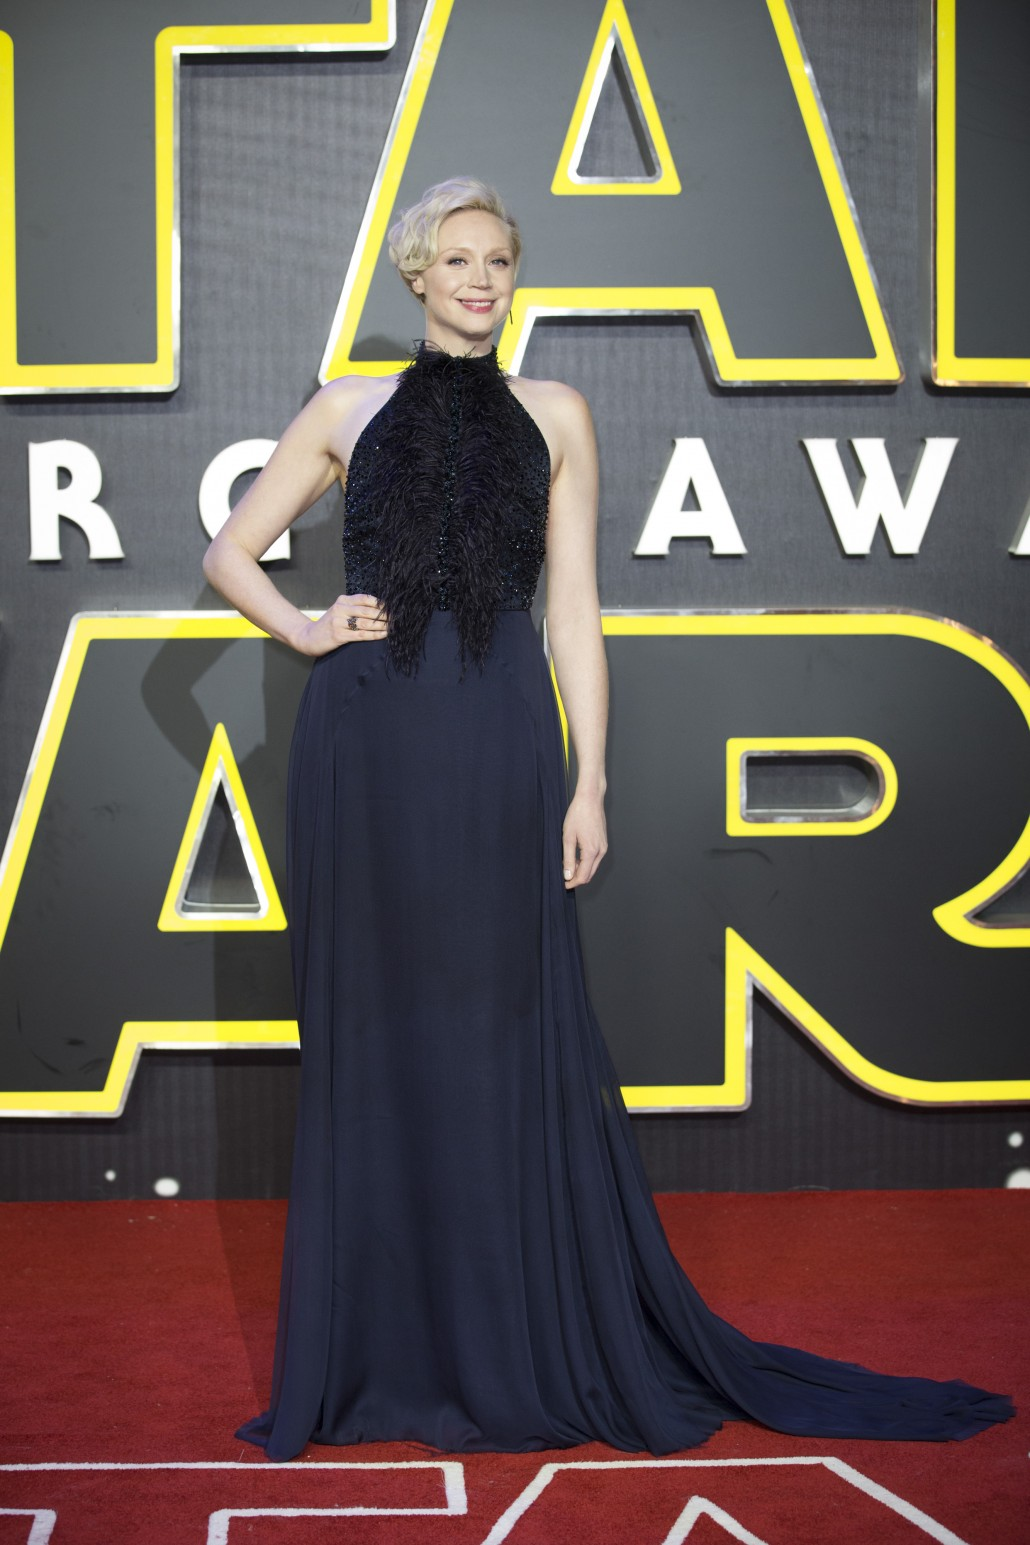 LONDON, UK - DECEMBER 16: Actress Gwendoline Christie attends the European Premiere of the highly anticipated Star Wars: The Force Awakens in London on December 16, 2015.